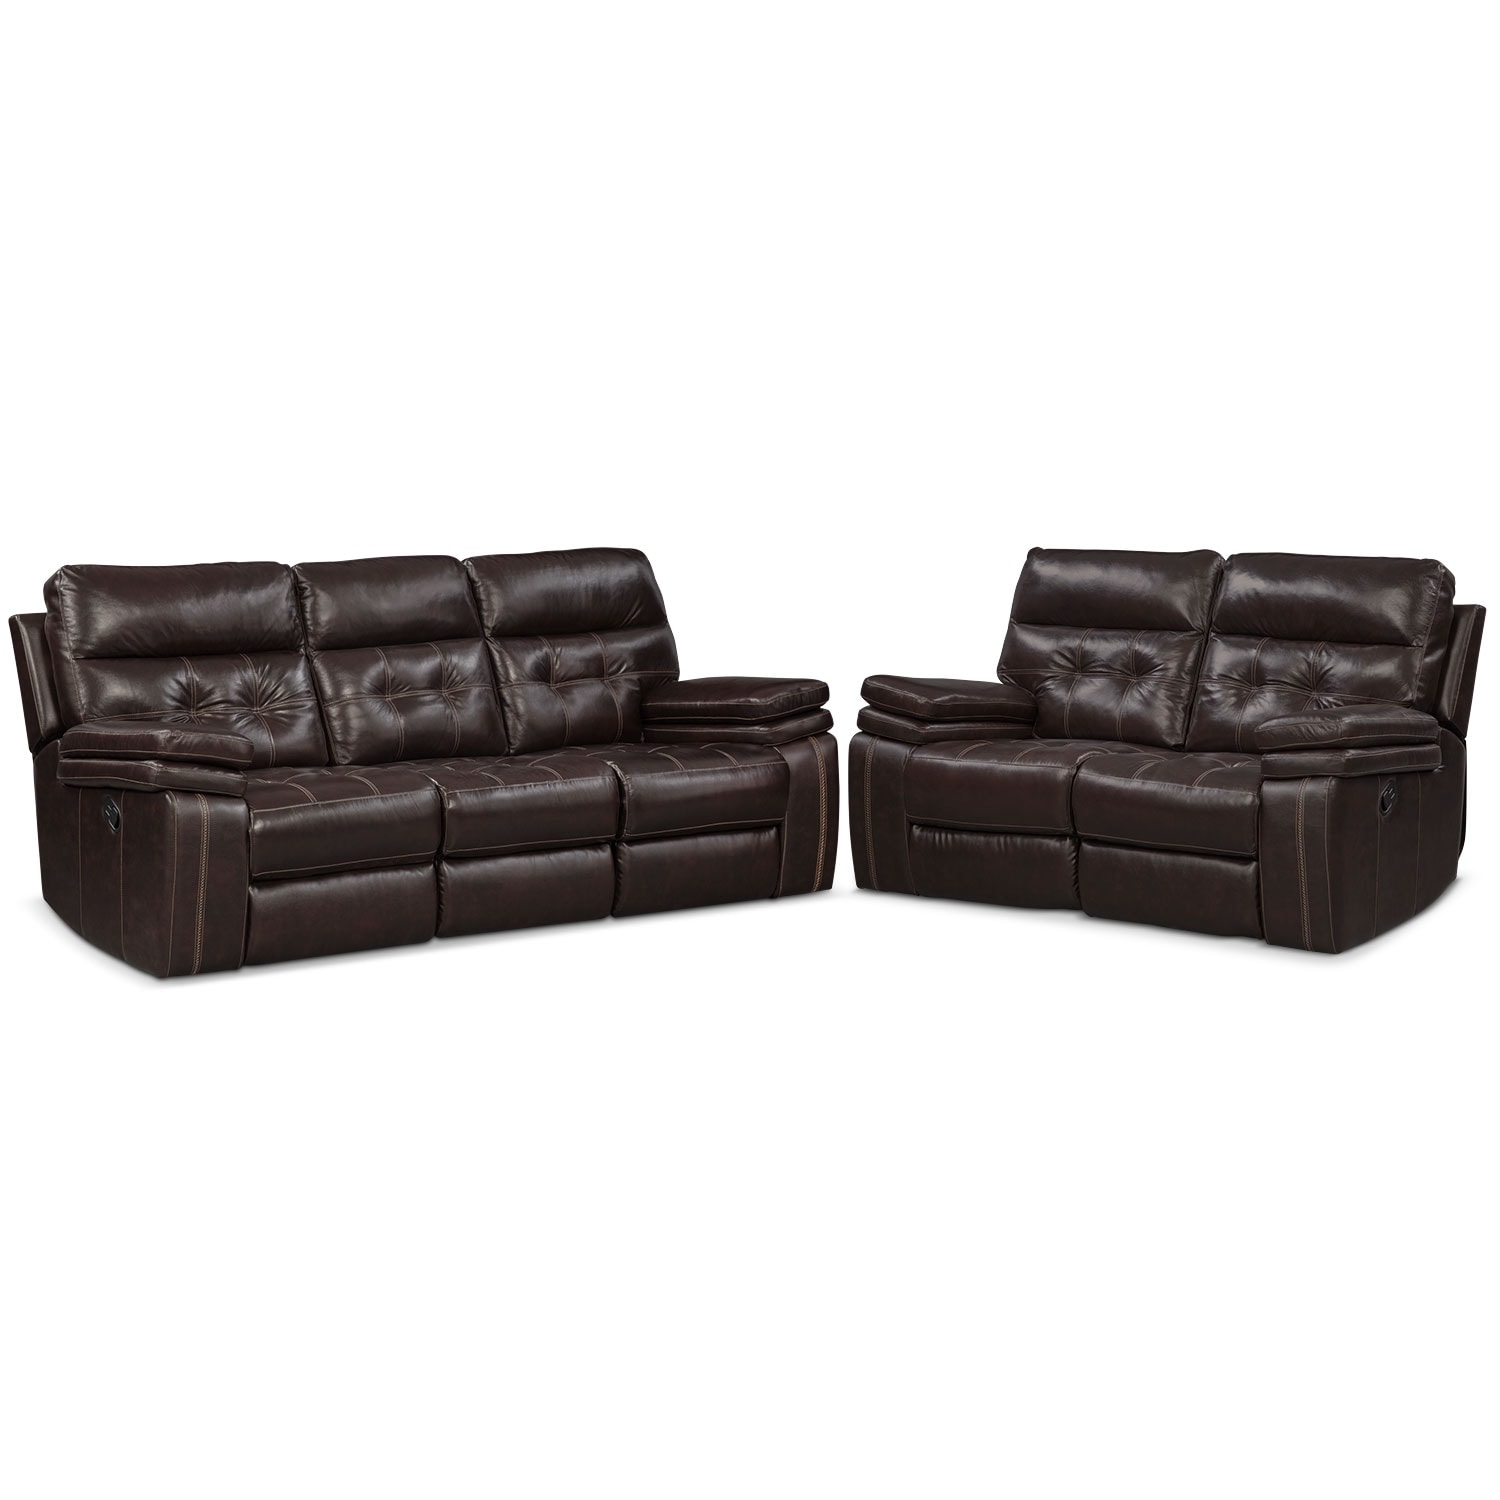 Living Room Furniture - Brisco Manual Reclining Sofa and Reclining Loveseat Set - Brown